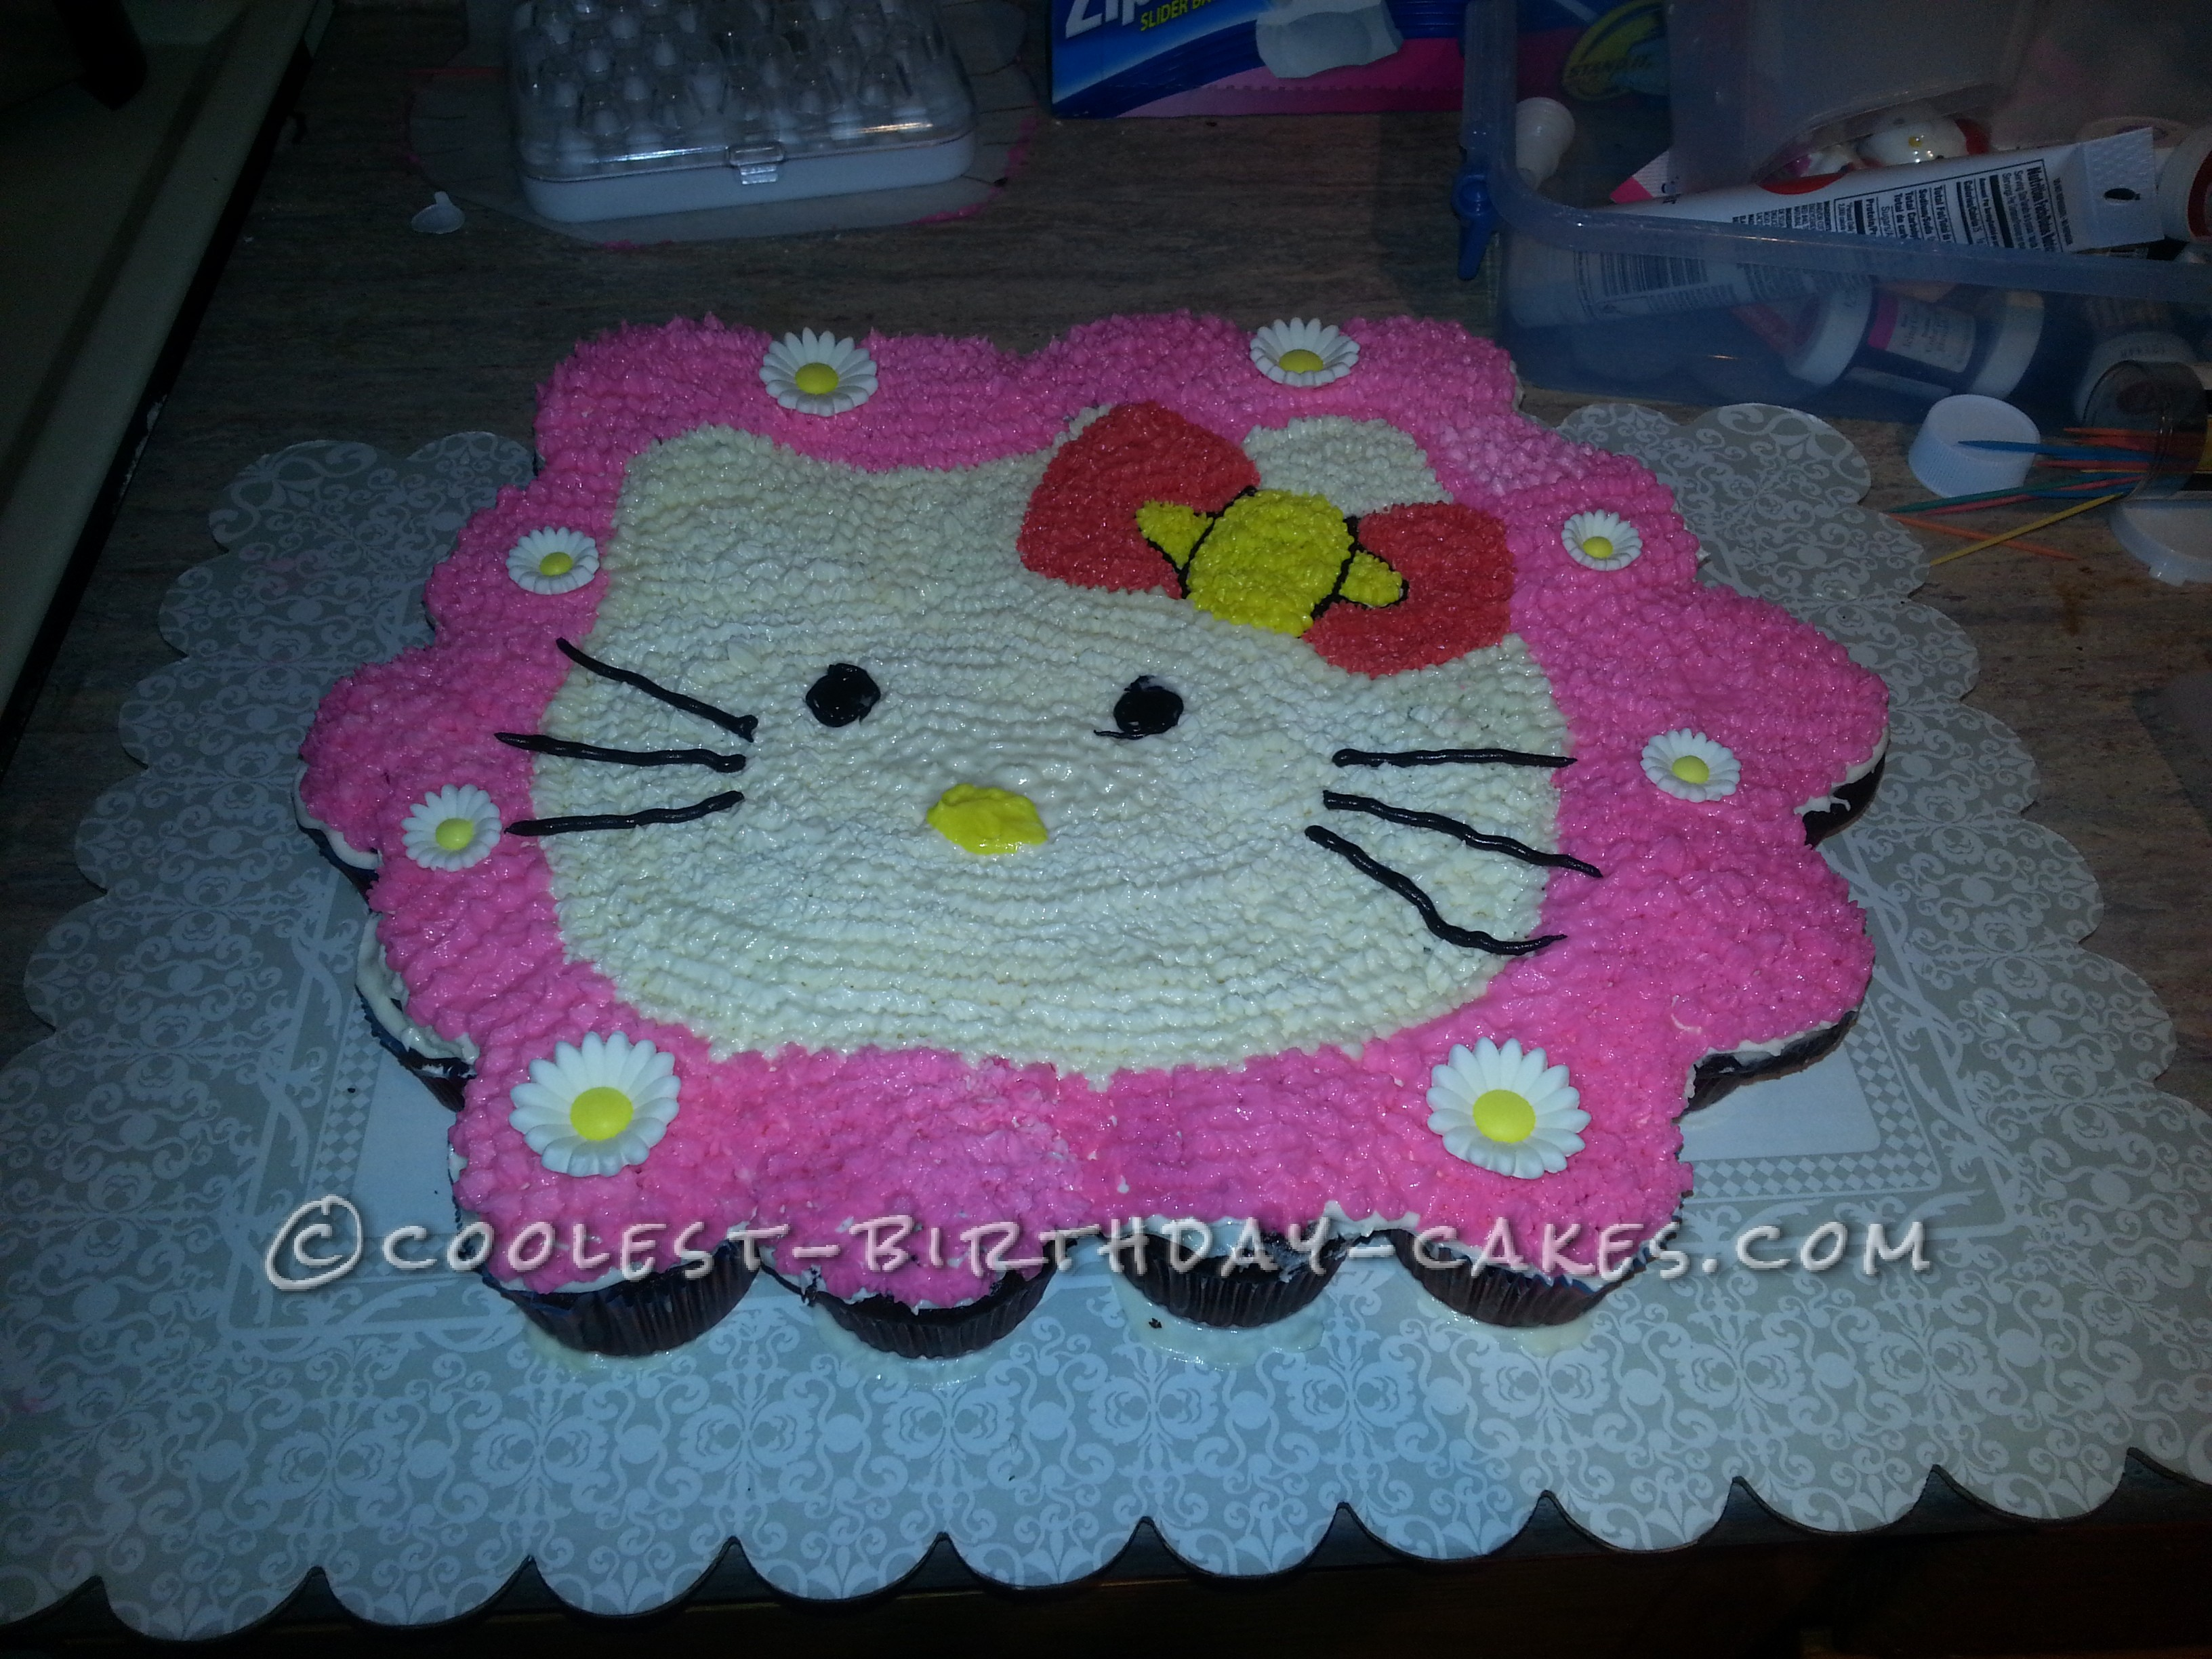 Coolest Hello Kitty Cupcake Cake for my Awesome 5-Year Old